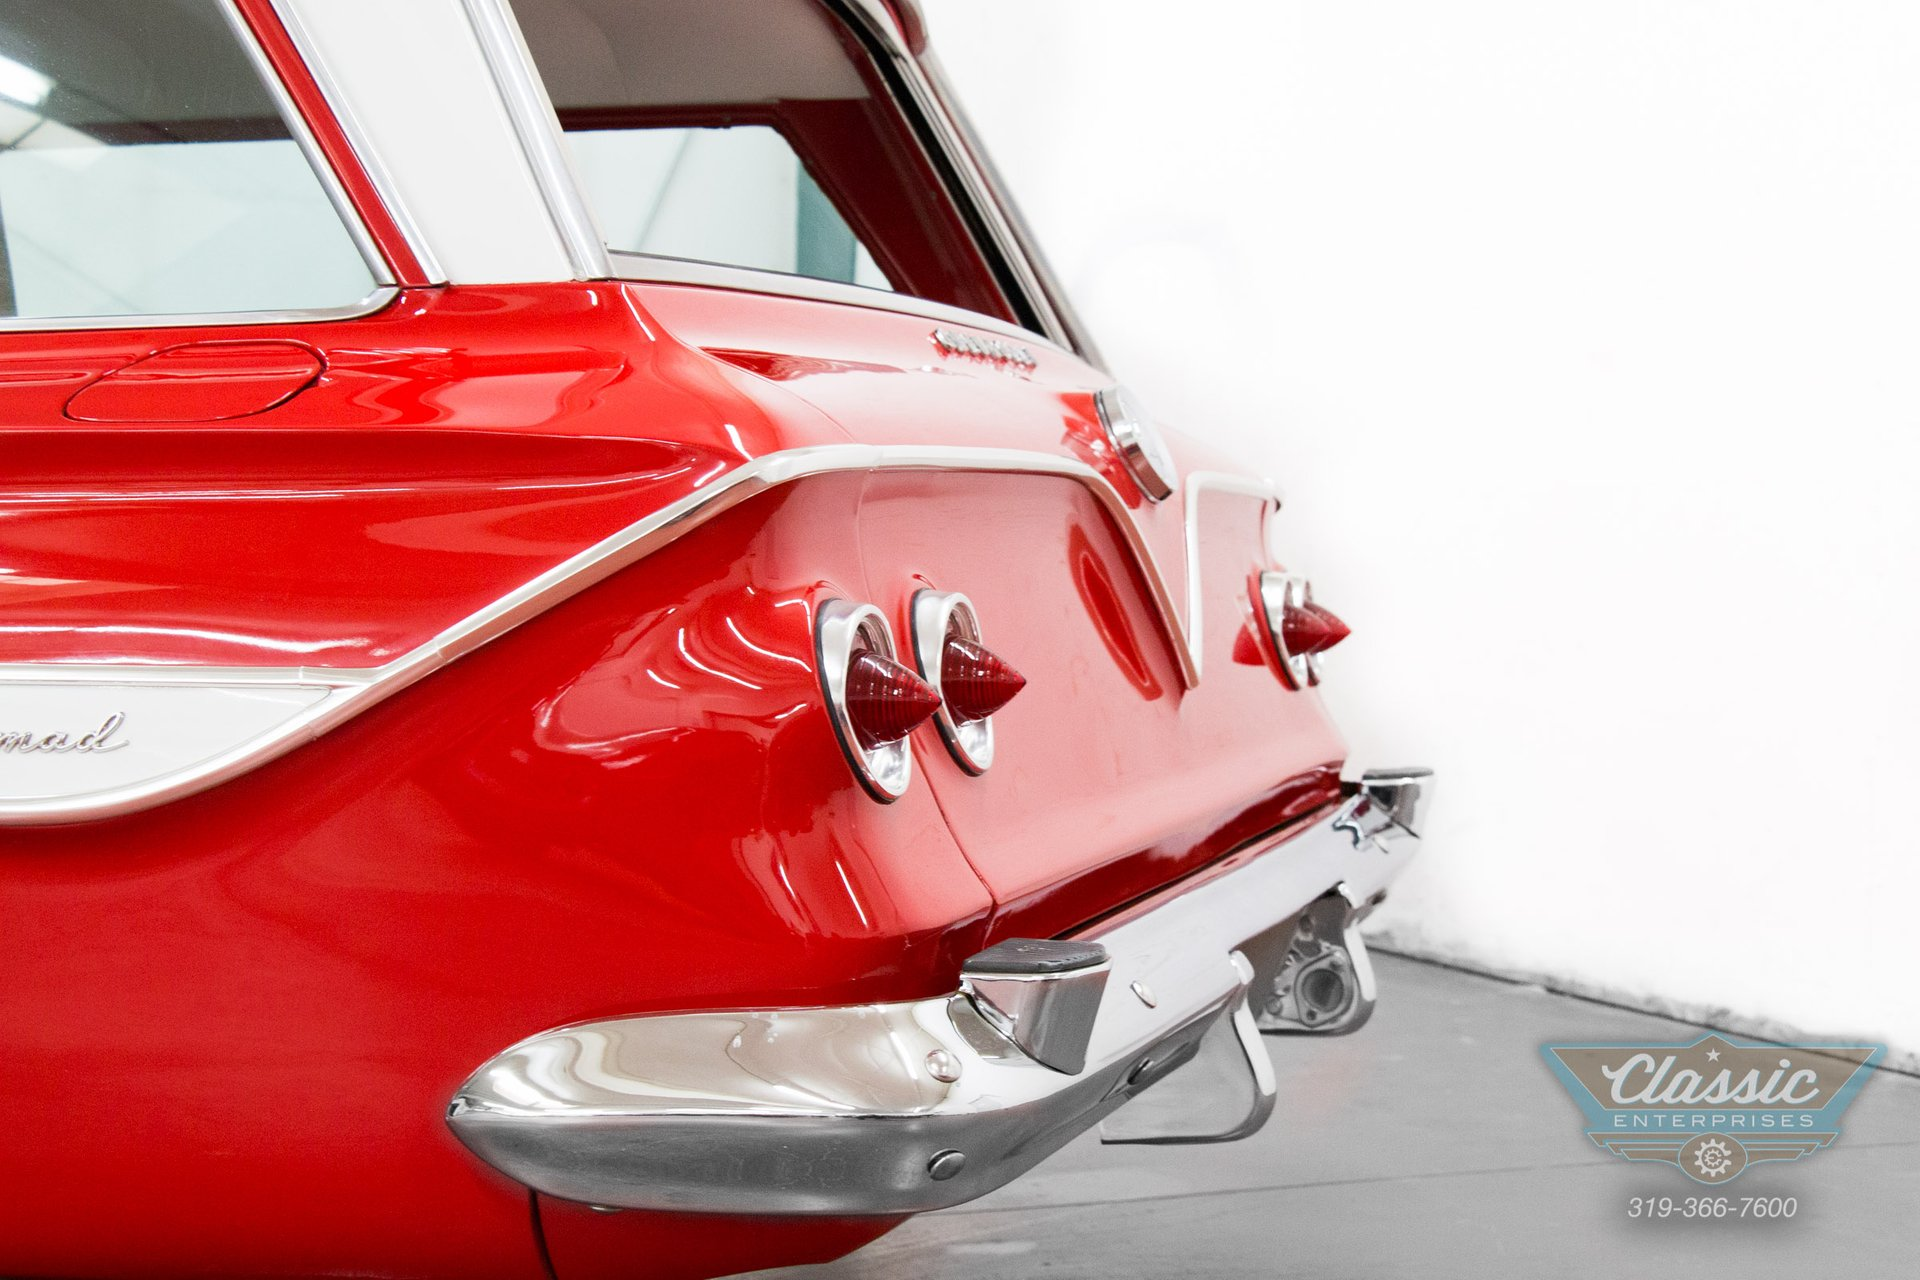 1960 Chevy Nomad Wagon Solid Body Power Steering And Power Brakes The